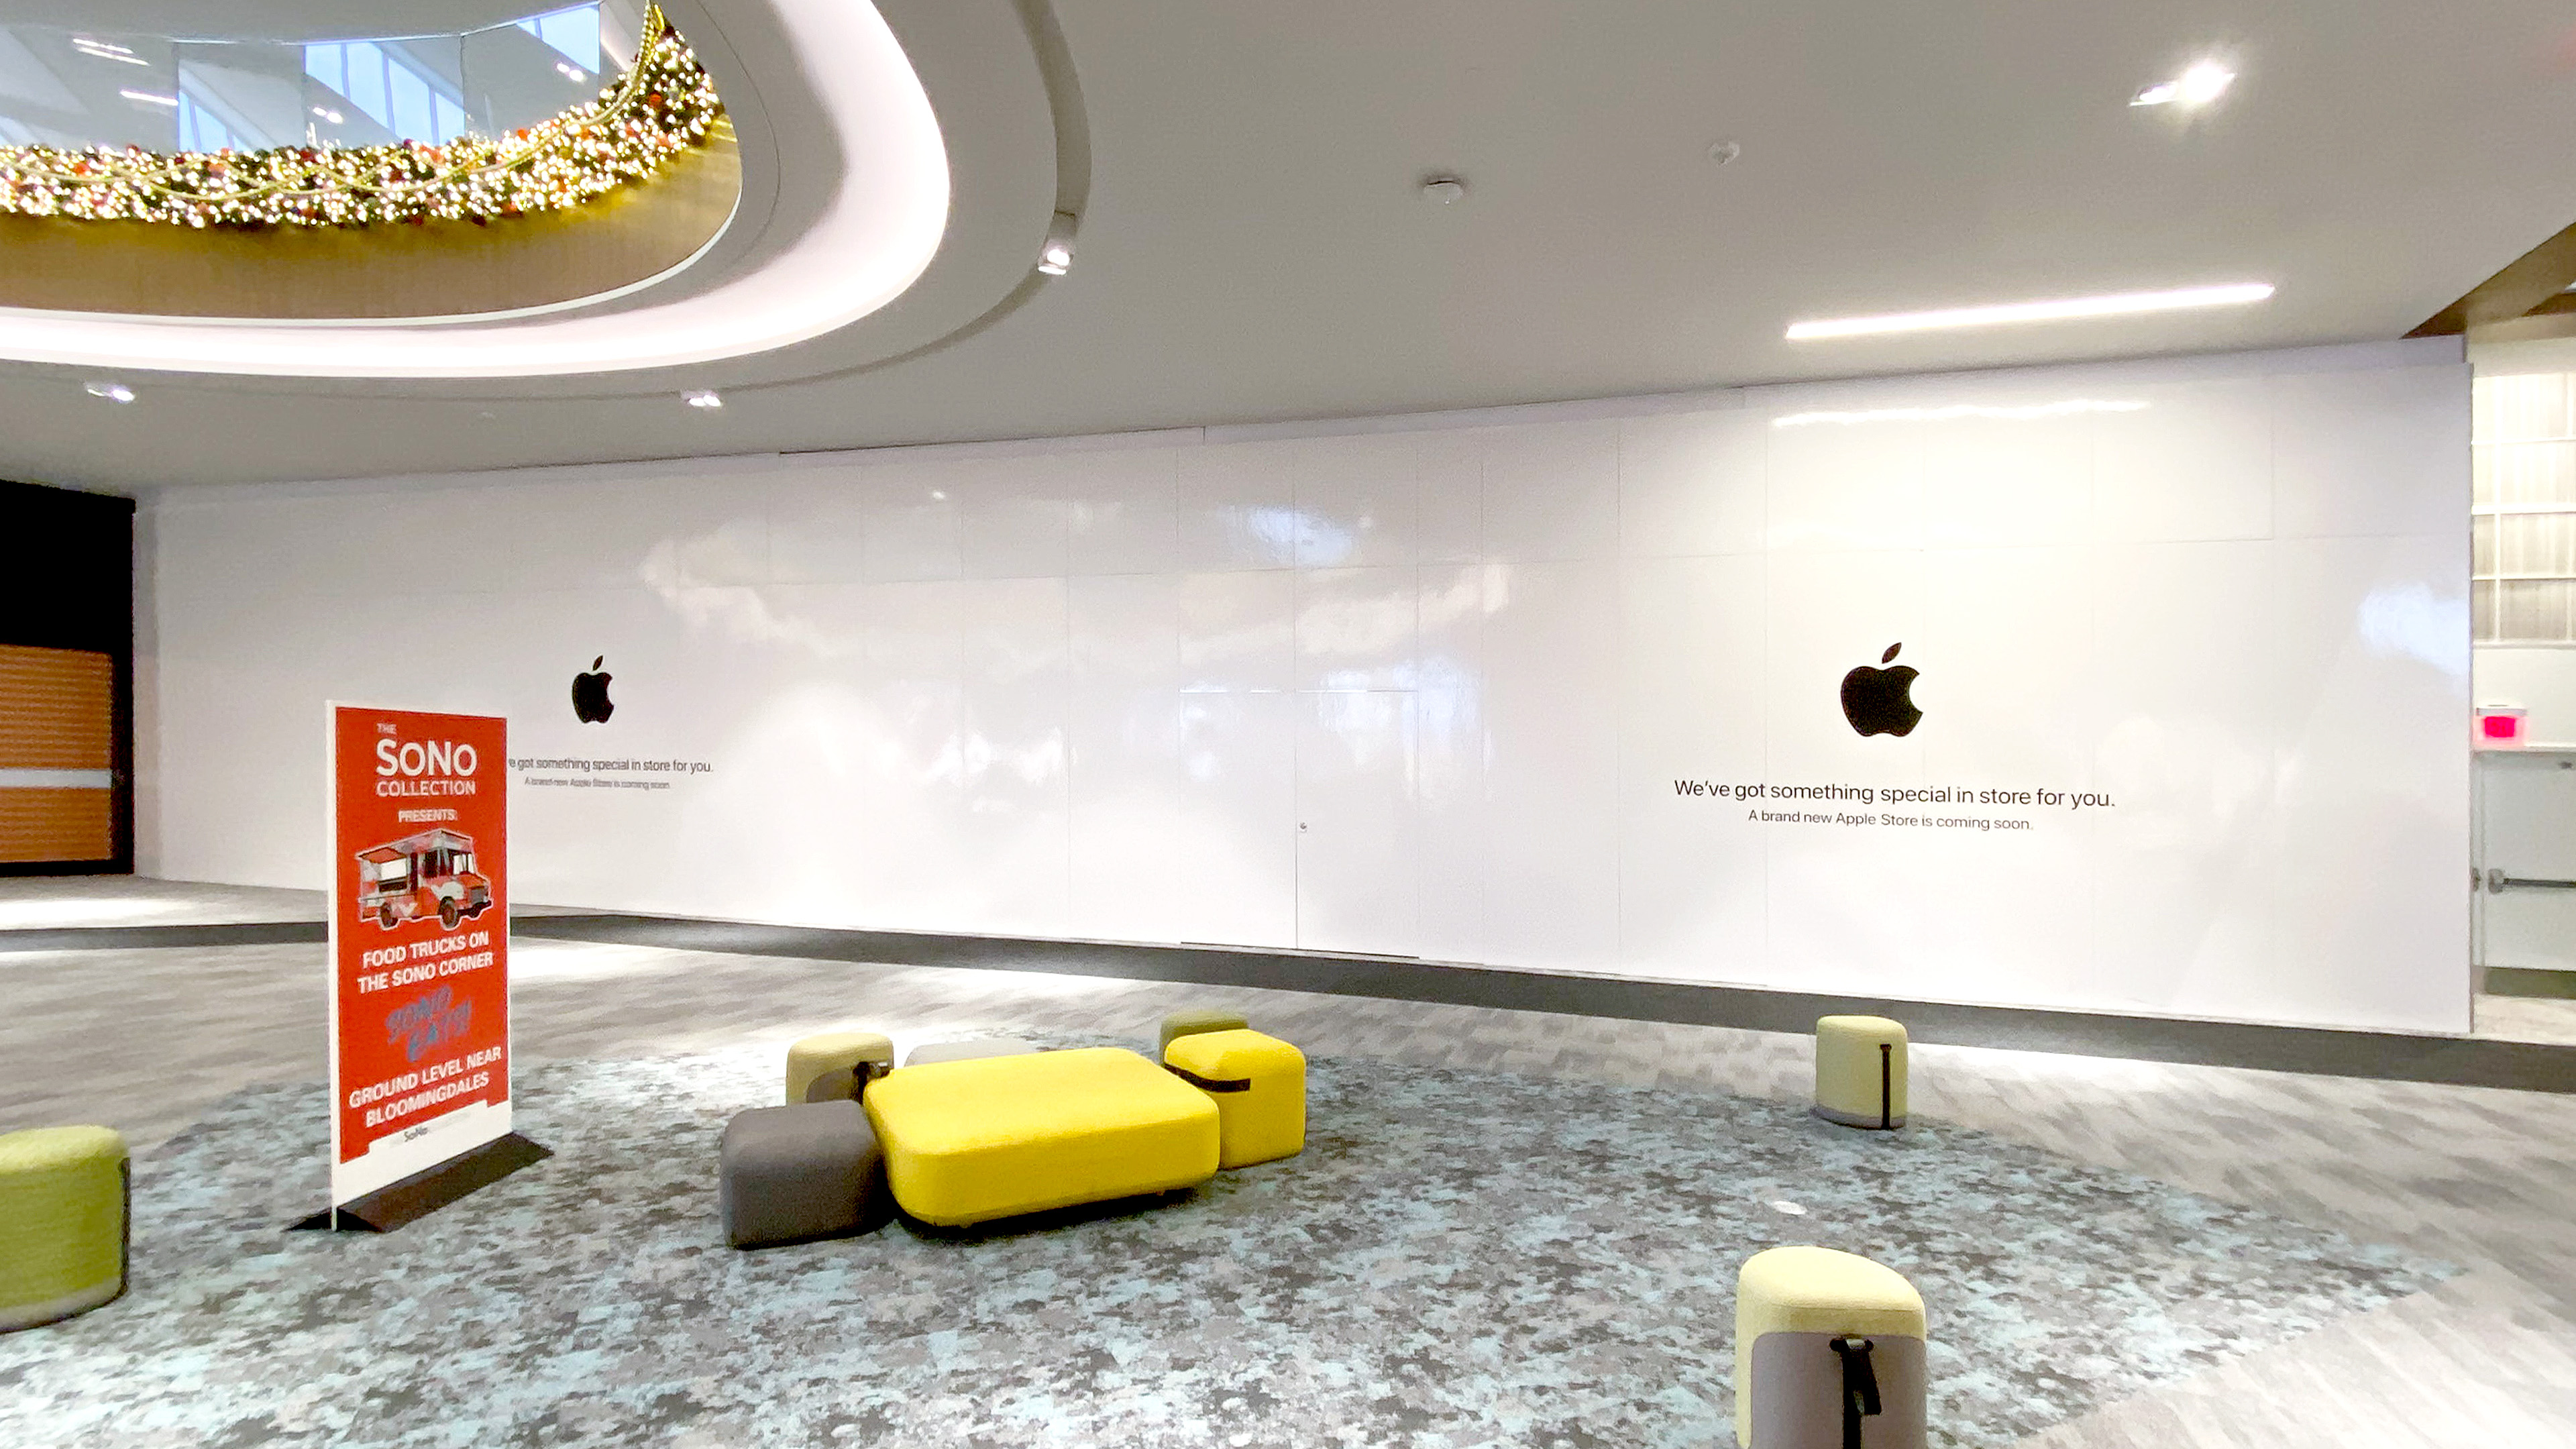 apple store sono collection jpg?quality=82&strip=all.'